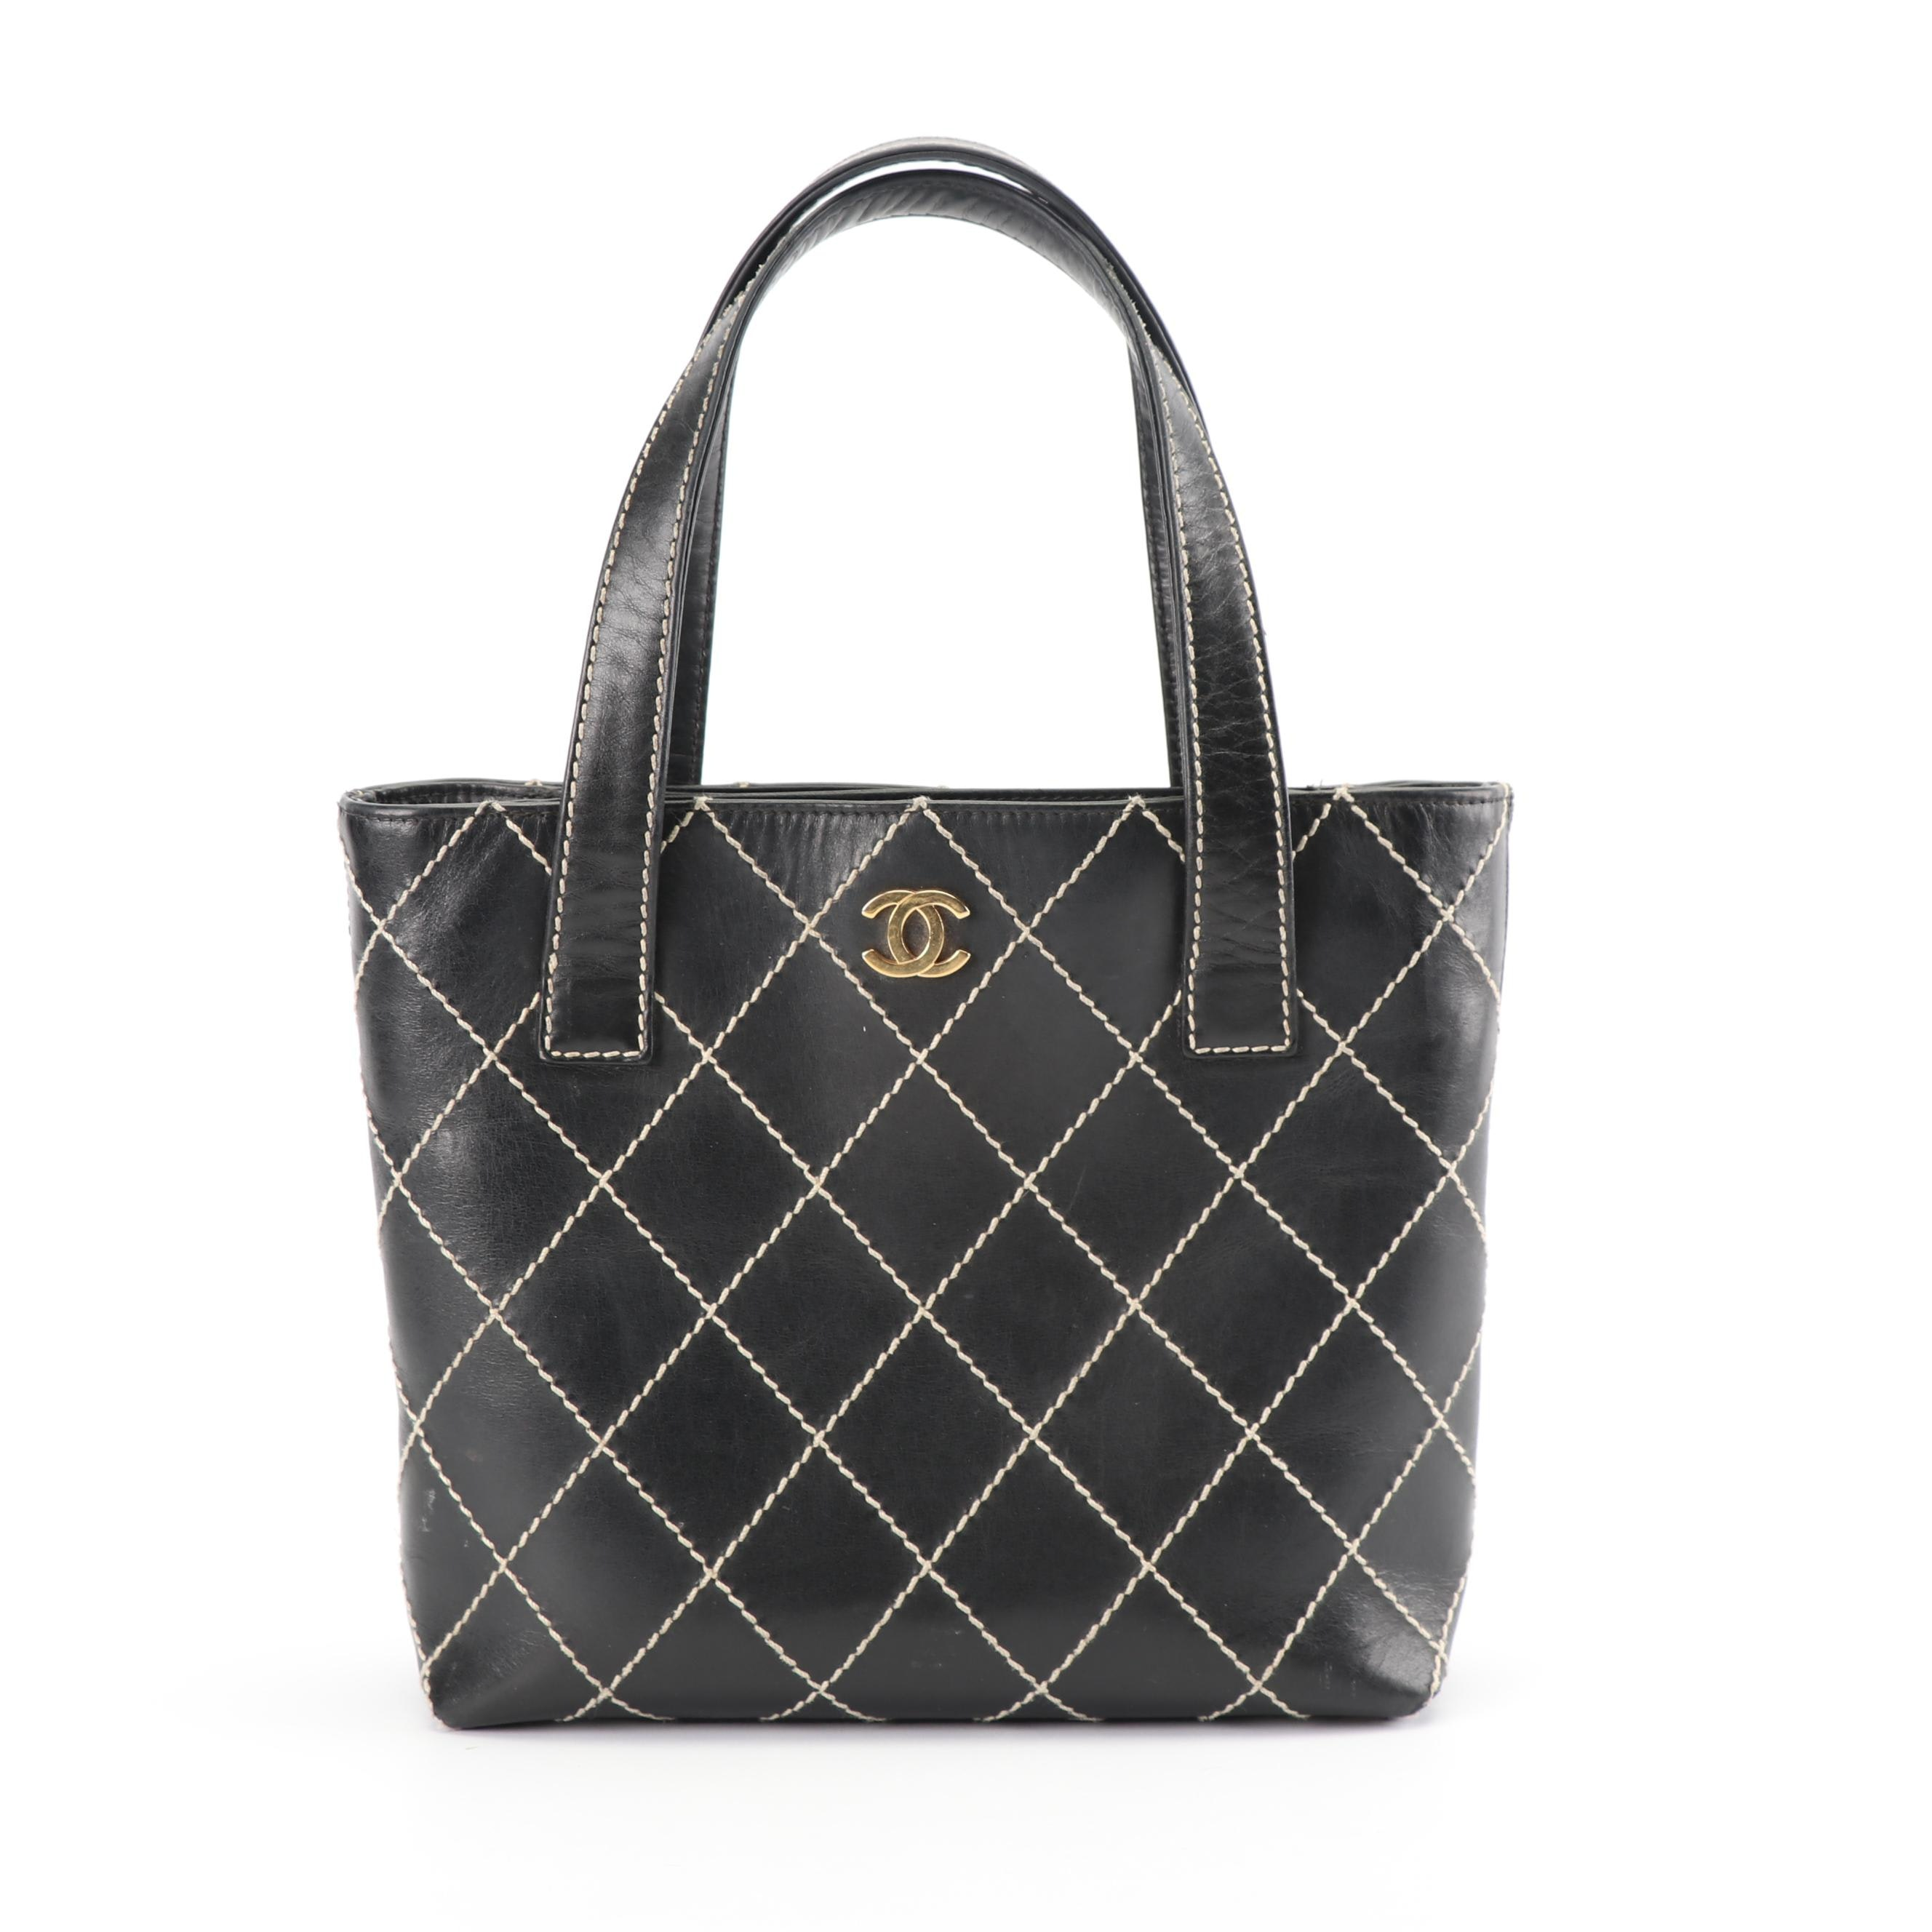 Chanel Black Calfskin Leather Tote with Diamond Contrast Stitch, Made in Italy